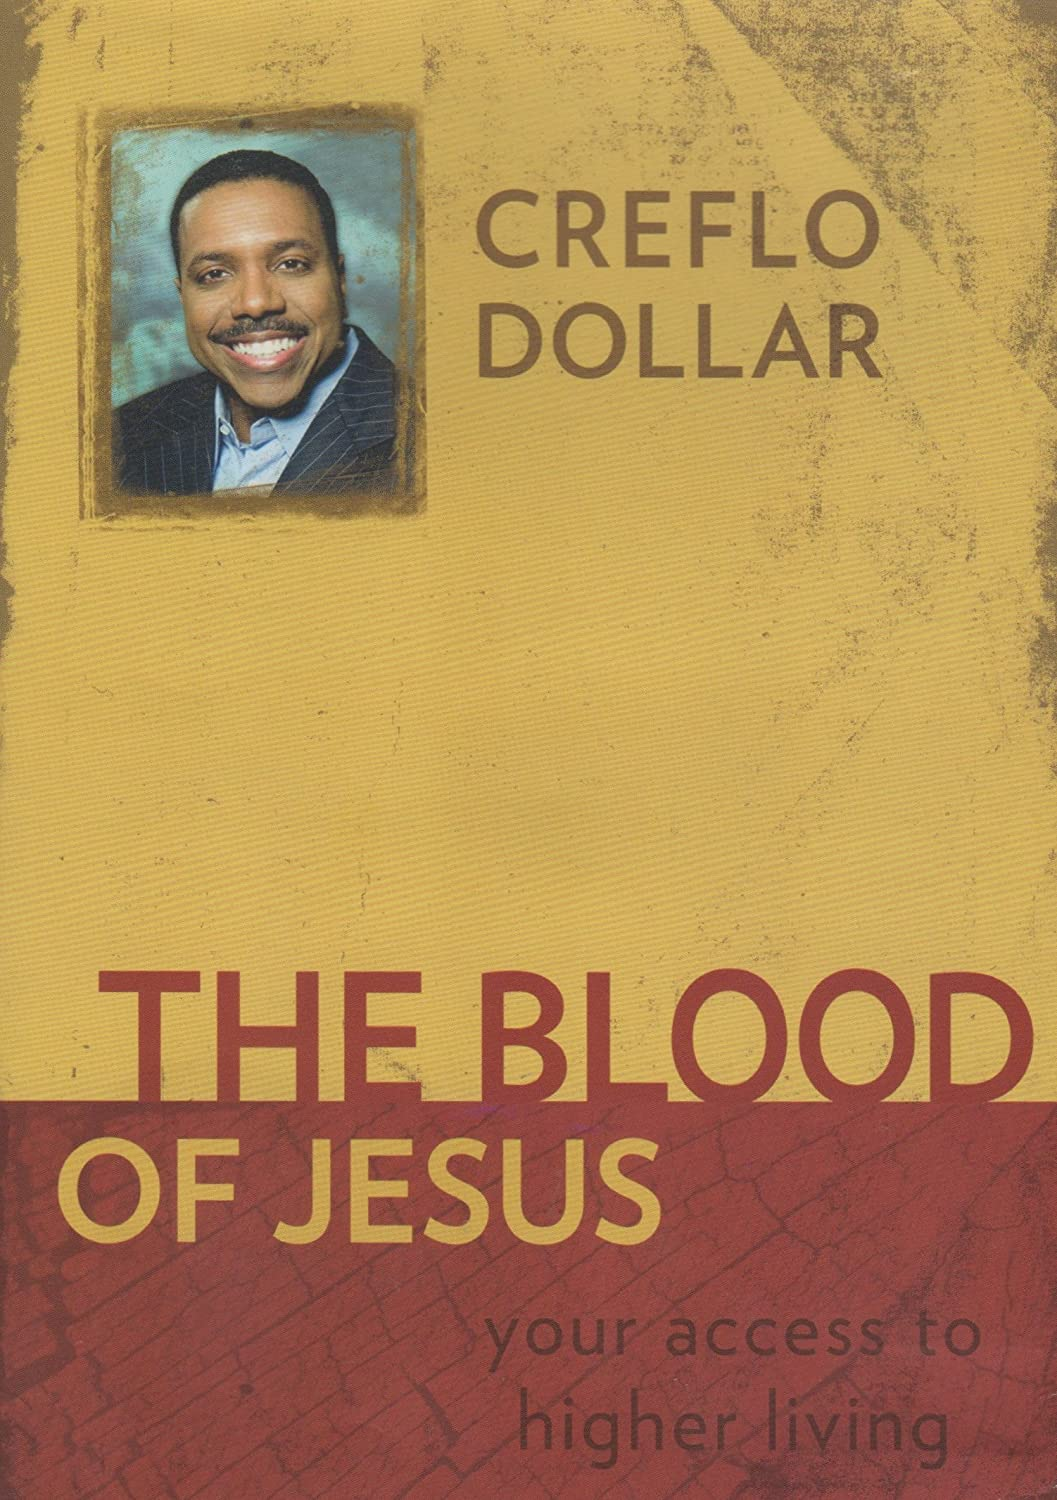 Amazon.com: Creflo Dollar: The Blood of Jesus: Your Access to Higher  Living: The Precious Blood of Jesus, Benefits of the Blood of Jesus & Your  Cleansing ...